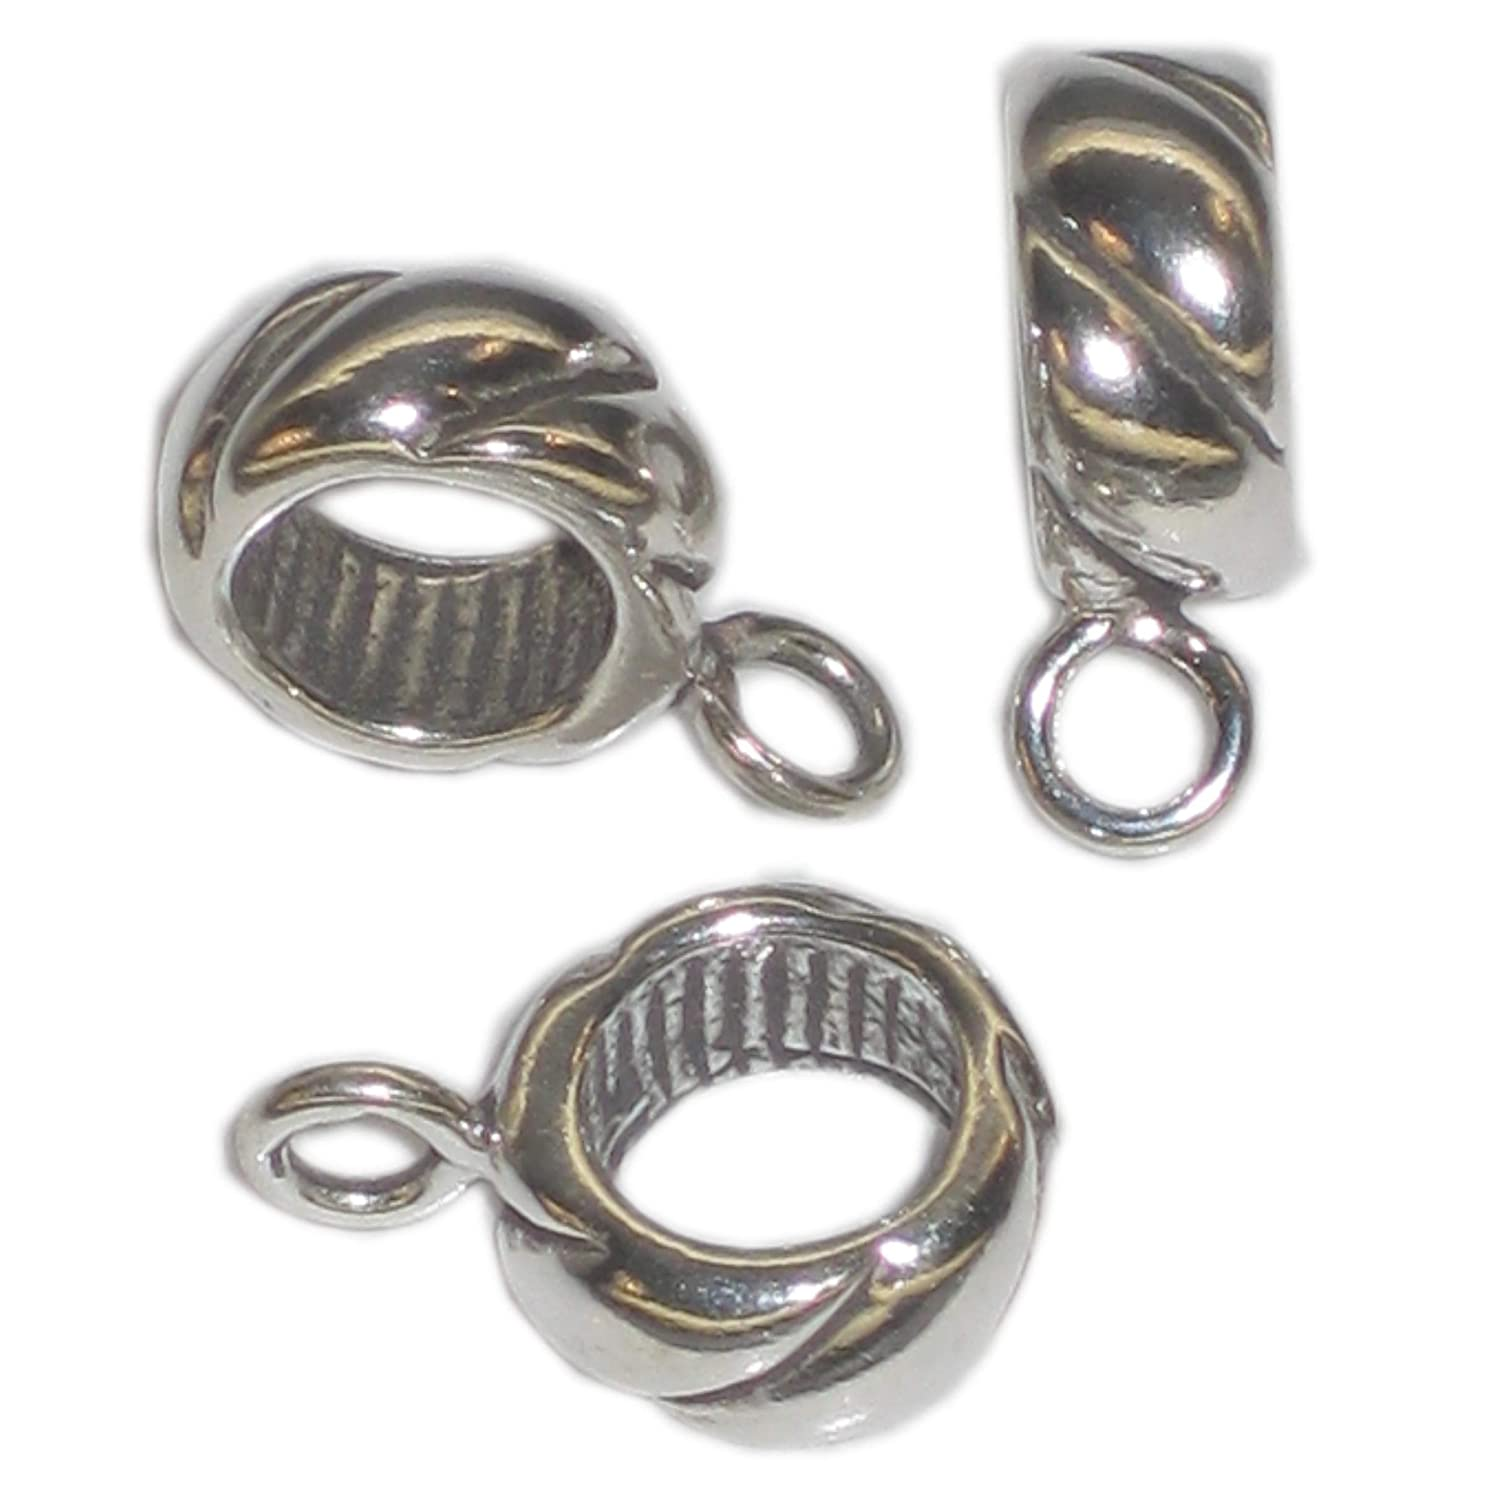 Bead sterling silver charm spacer Converter .925 x 1 Converters spacers SSCB89